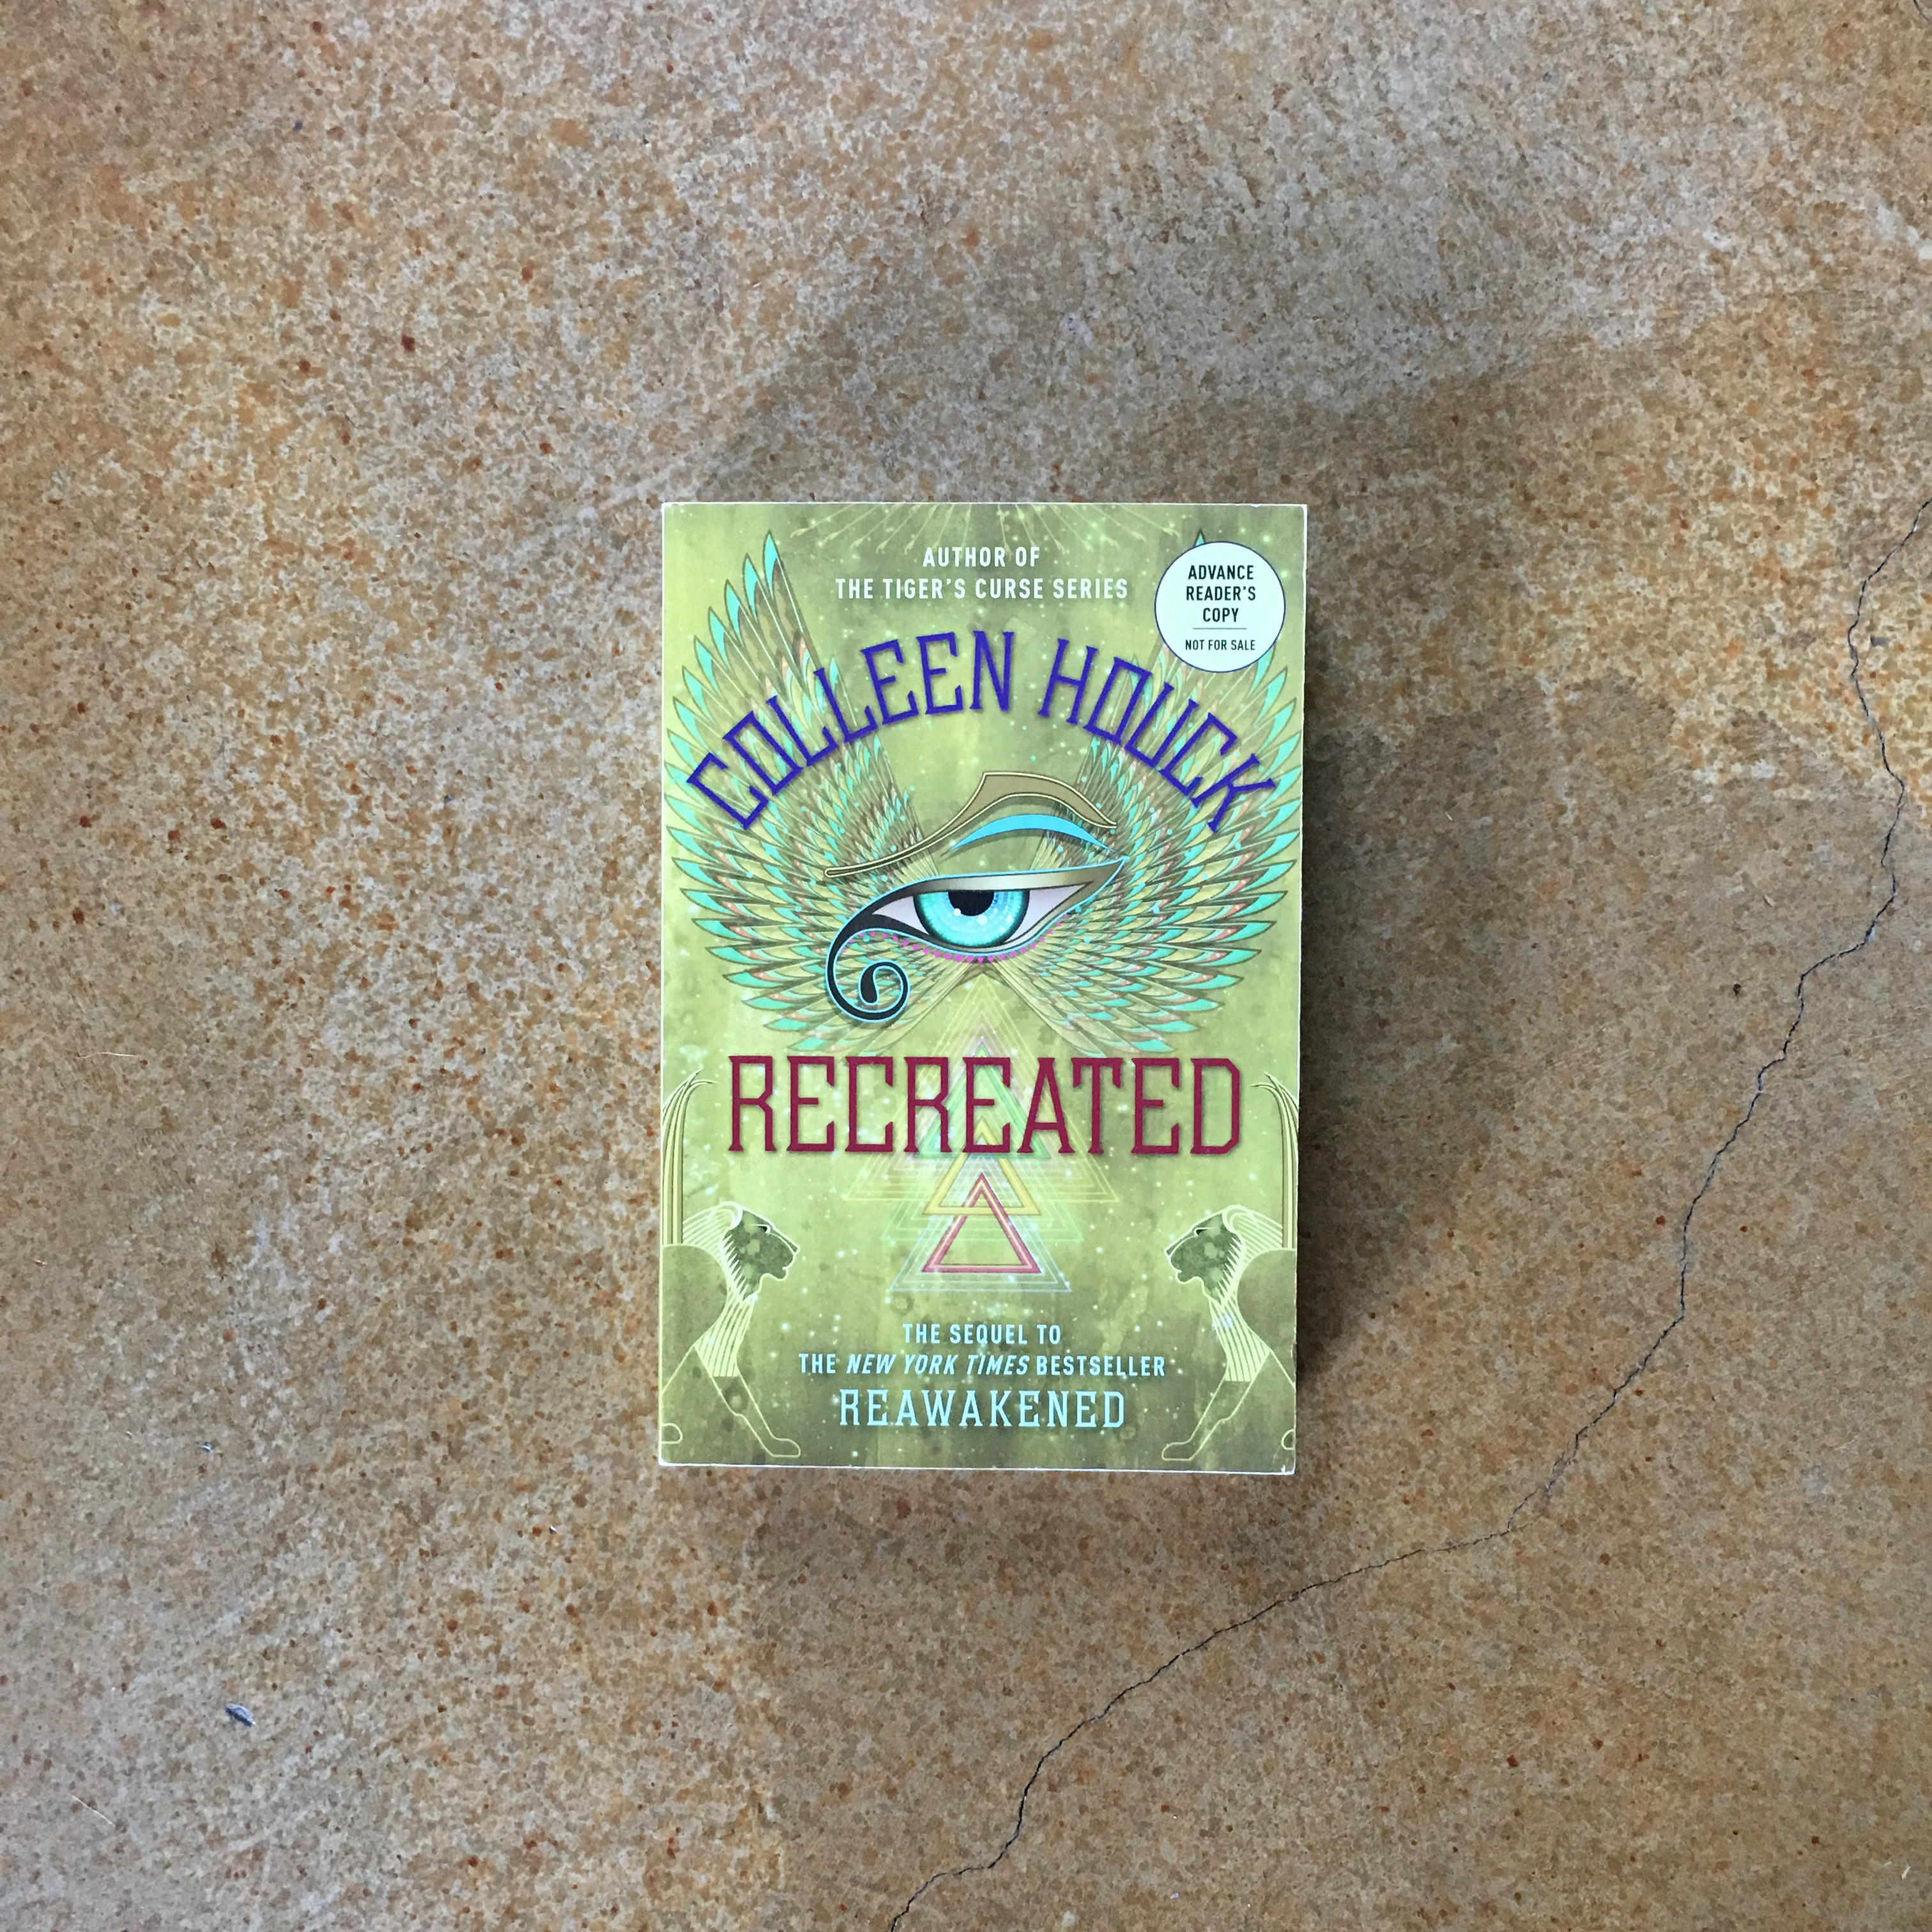 Prize #5: An ARC of Recreated by Colleen Houck